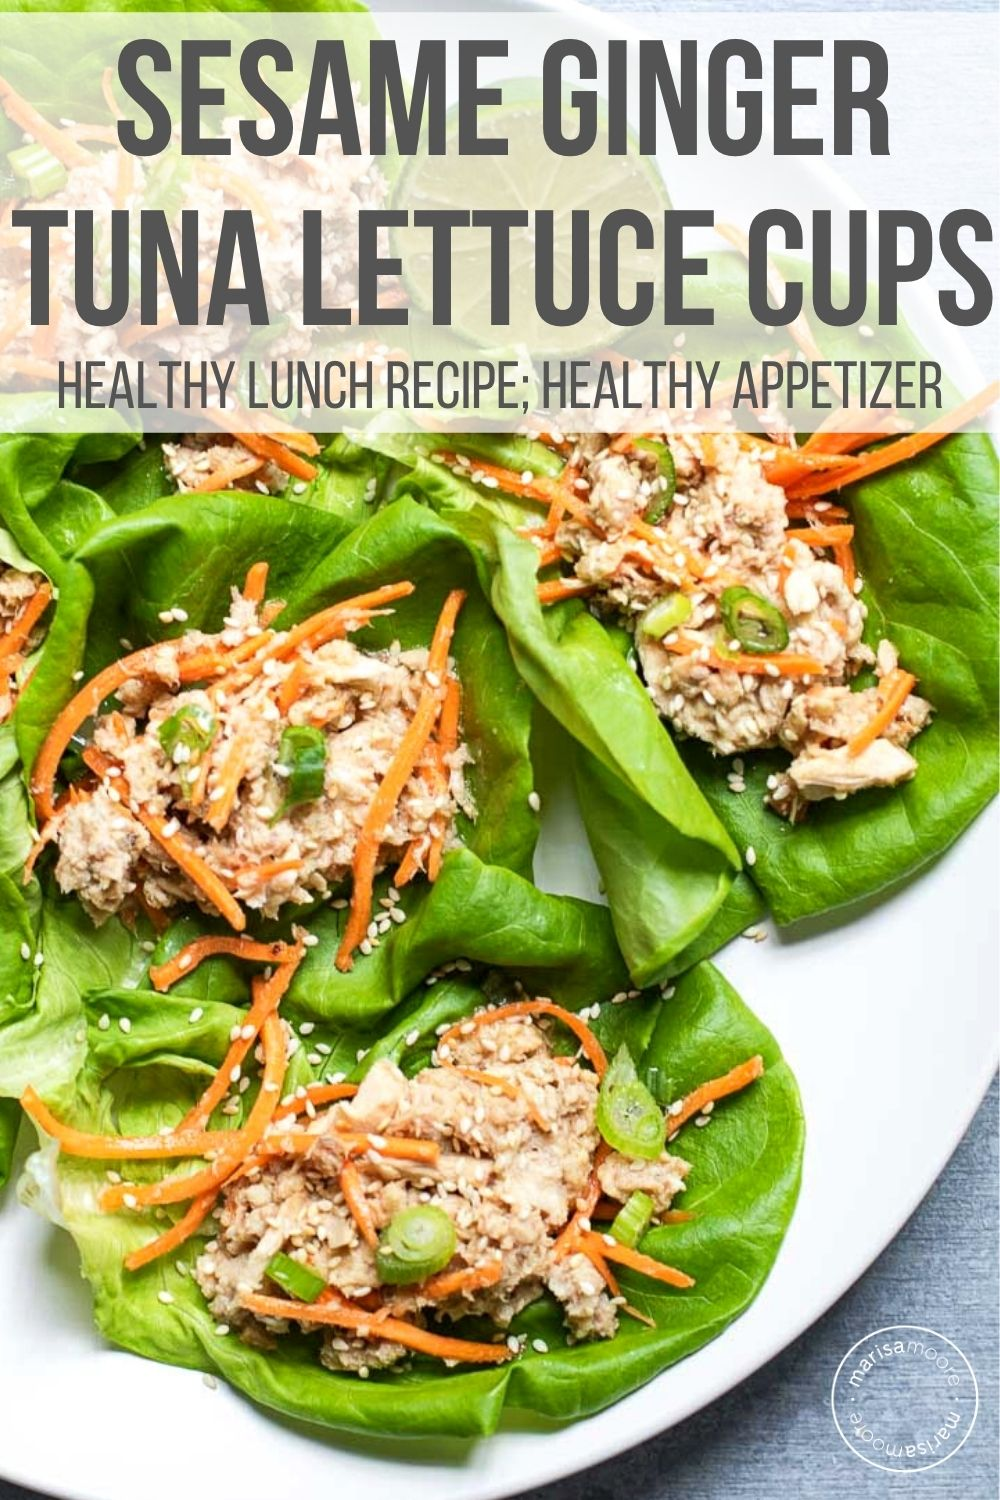 Tuna lettuce cups on white plate with a text overlay stating sesame ginger tuna lettuce cups